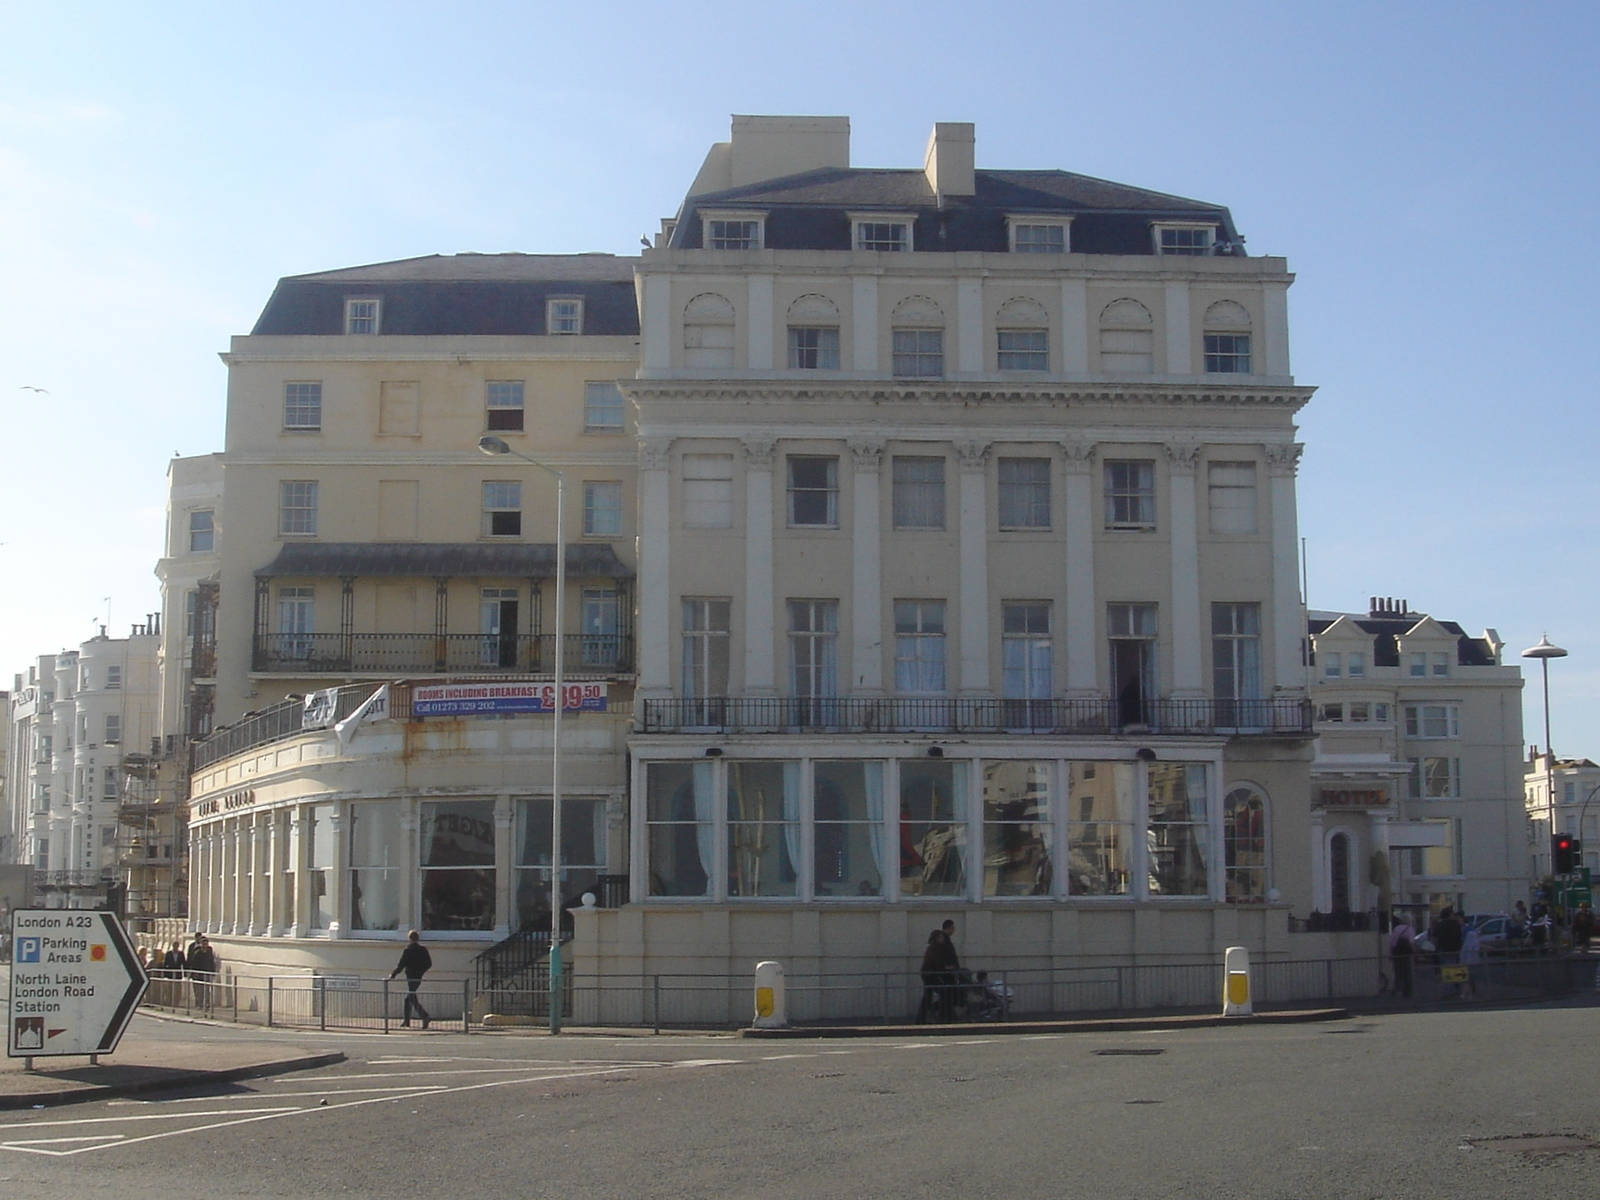 The Royal Albion Seafront Hotel Broadstairs